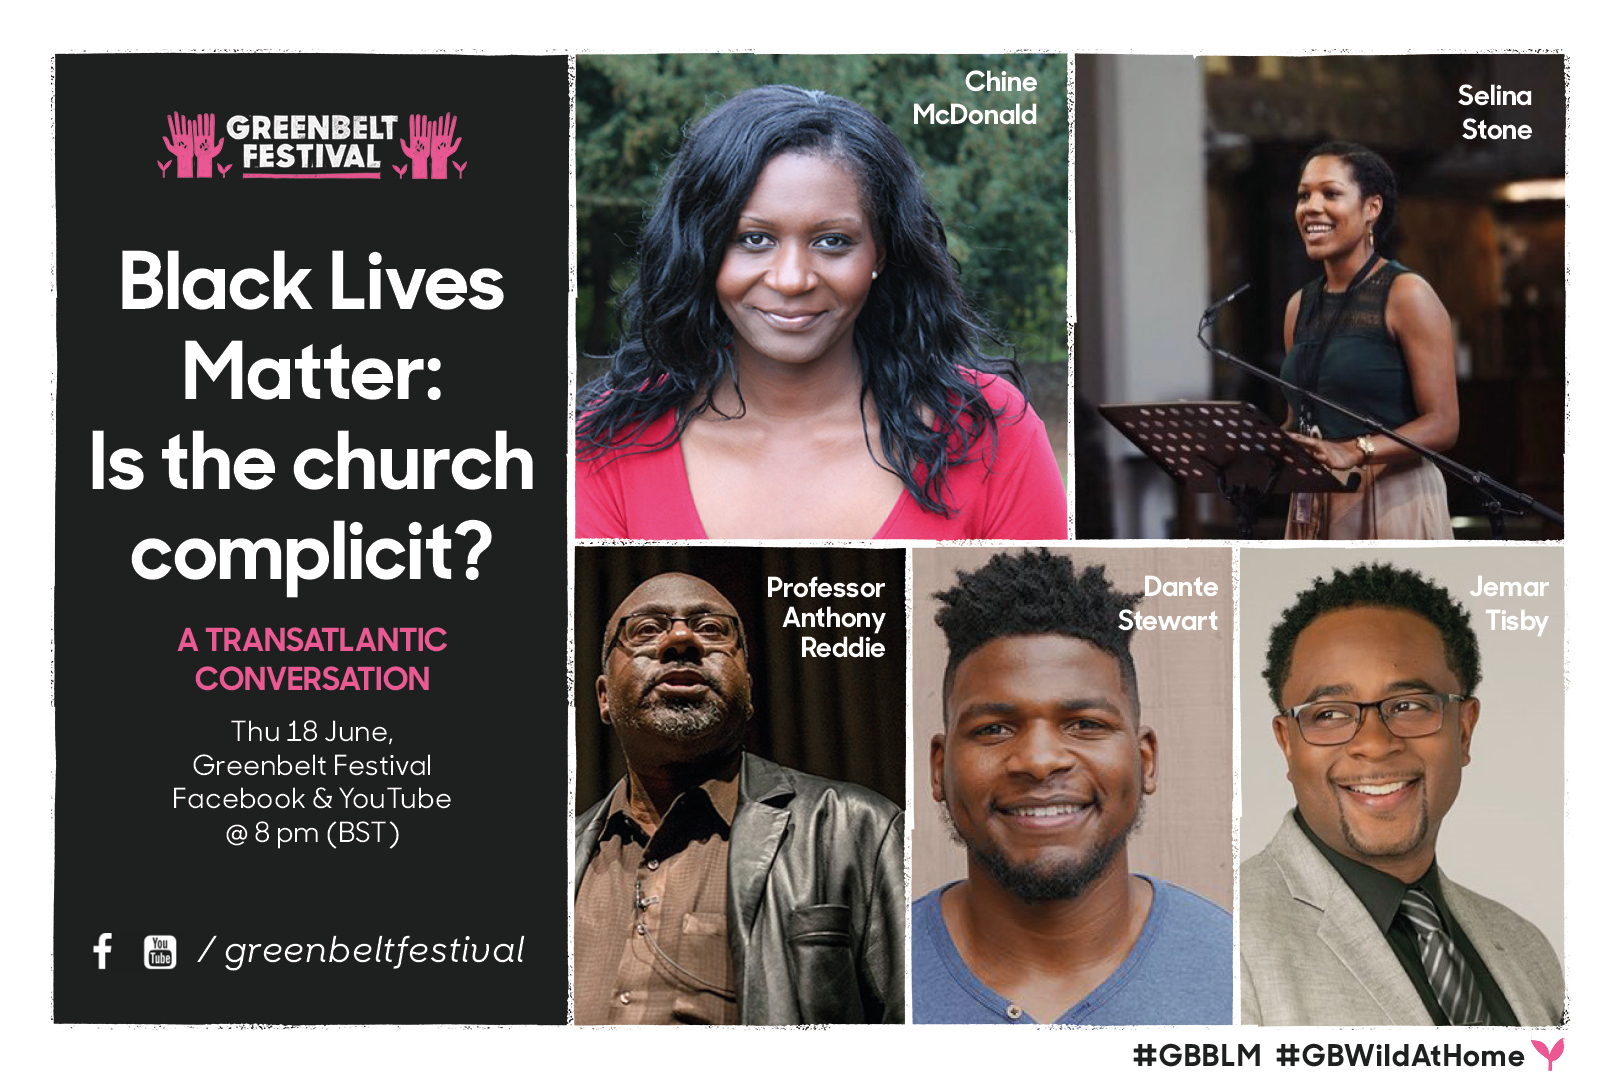 Black Lives Matter: Is the church complicit? A transatlantic conversation